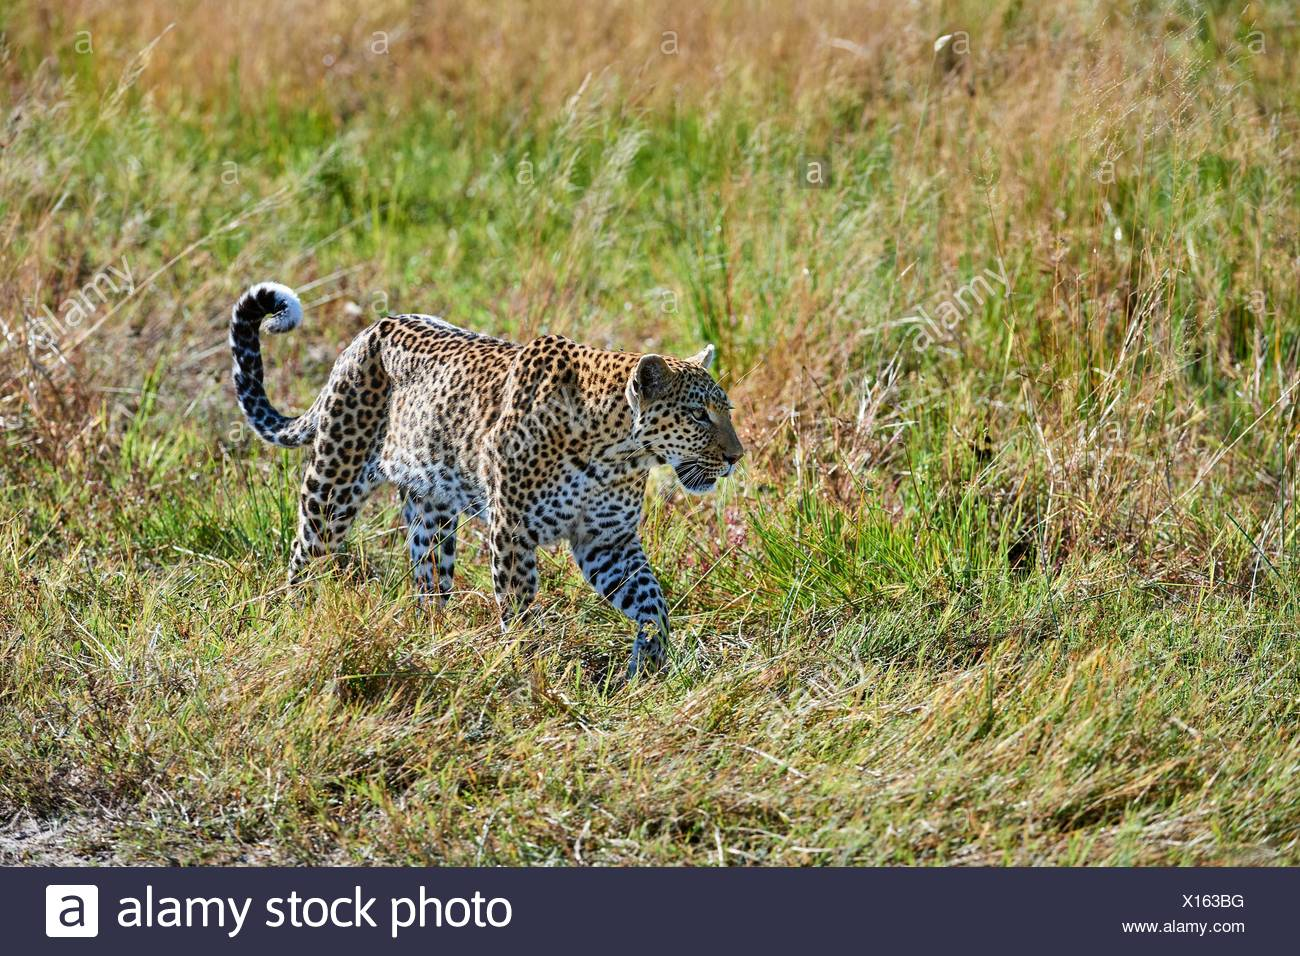 African leopard female (Panthera pardus) walking through grassland. Moremi National Park, Okavango delta, Botswana, Southern Africa. - Stock Image